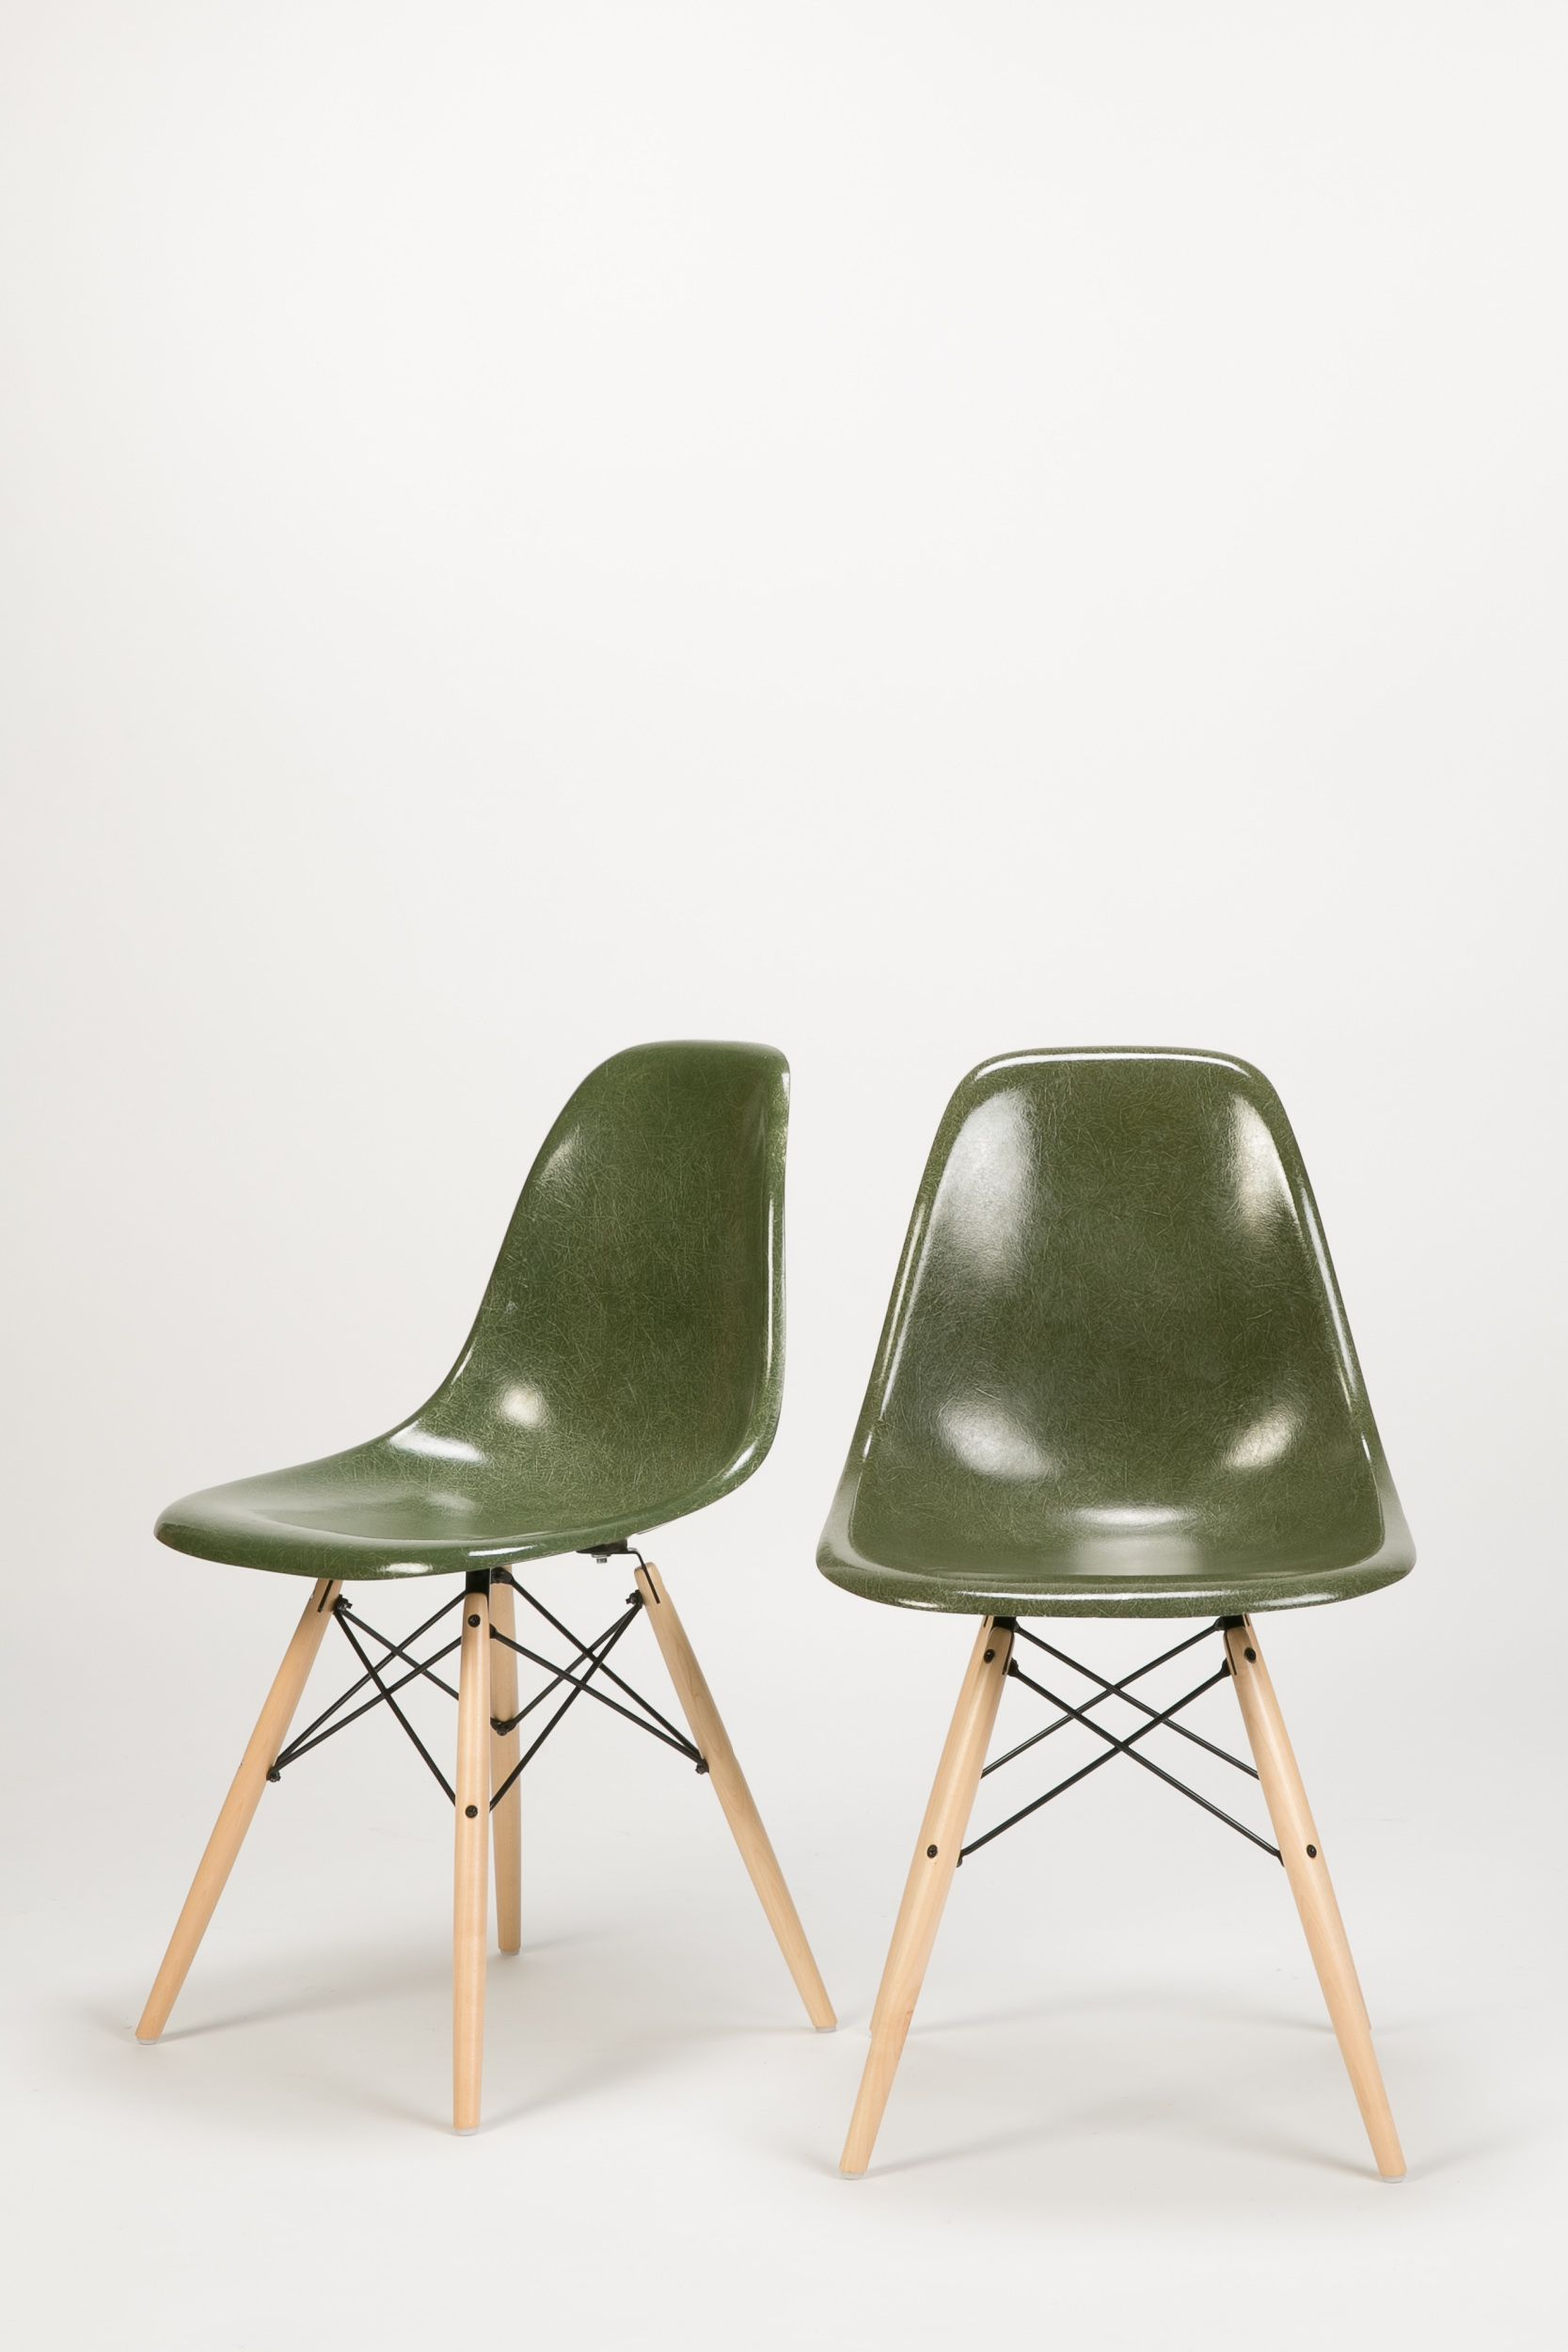 Olive Herman Miller Charles And Ray Eames Eames Stuhl - Kissen Eames Chair